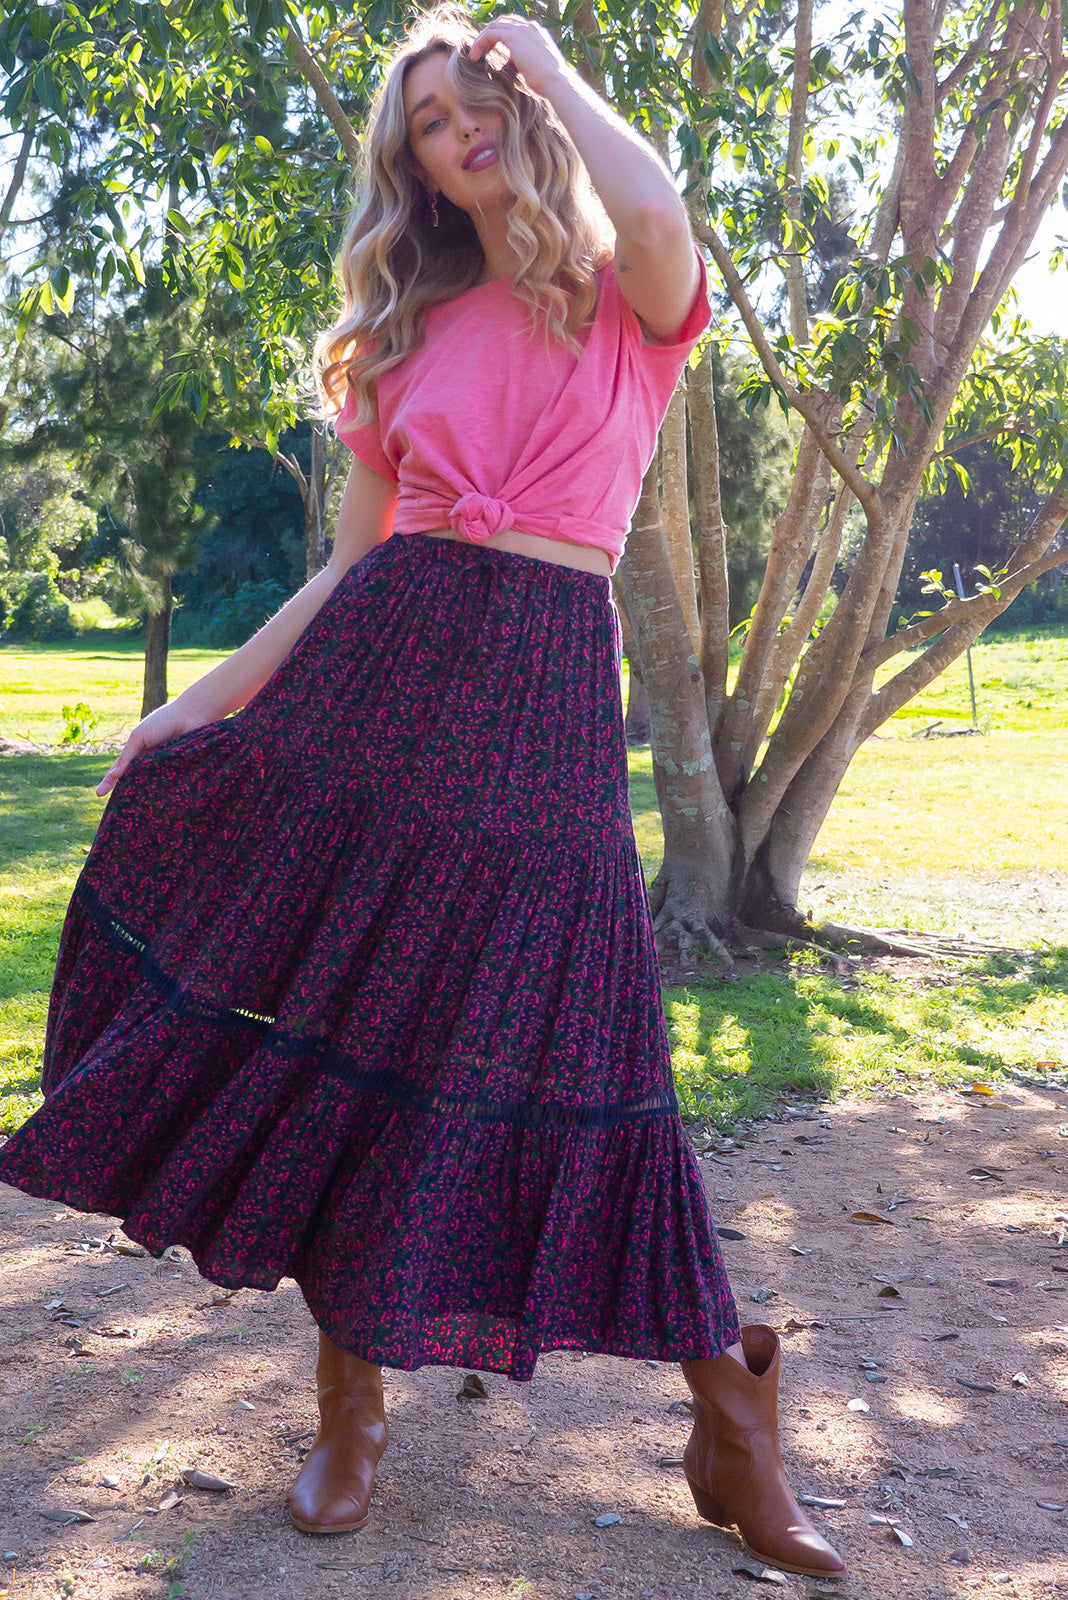 Bonnie Cerise Scattered Maxi Skirt is a tiered skirt and features an elasticated waist, side pockets and cotton insertion lace and it comes in a deep navy and cerise pink floral bohemian print of woven 100% rayon.